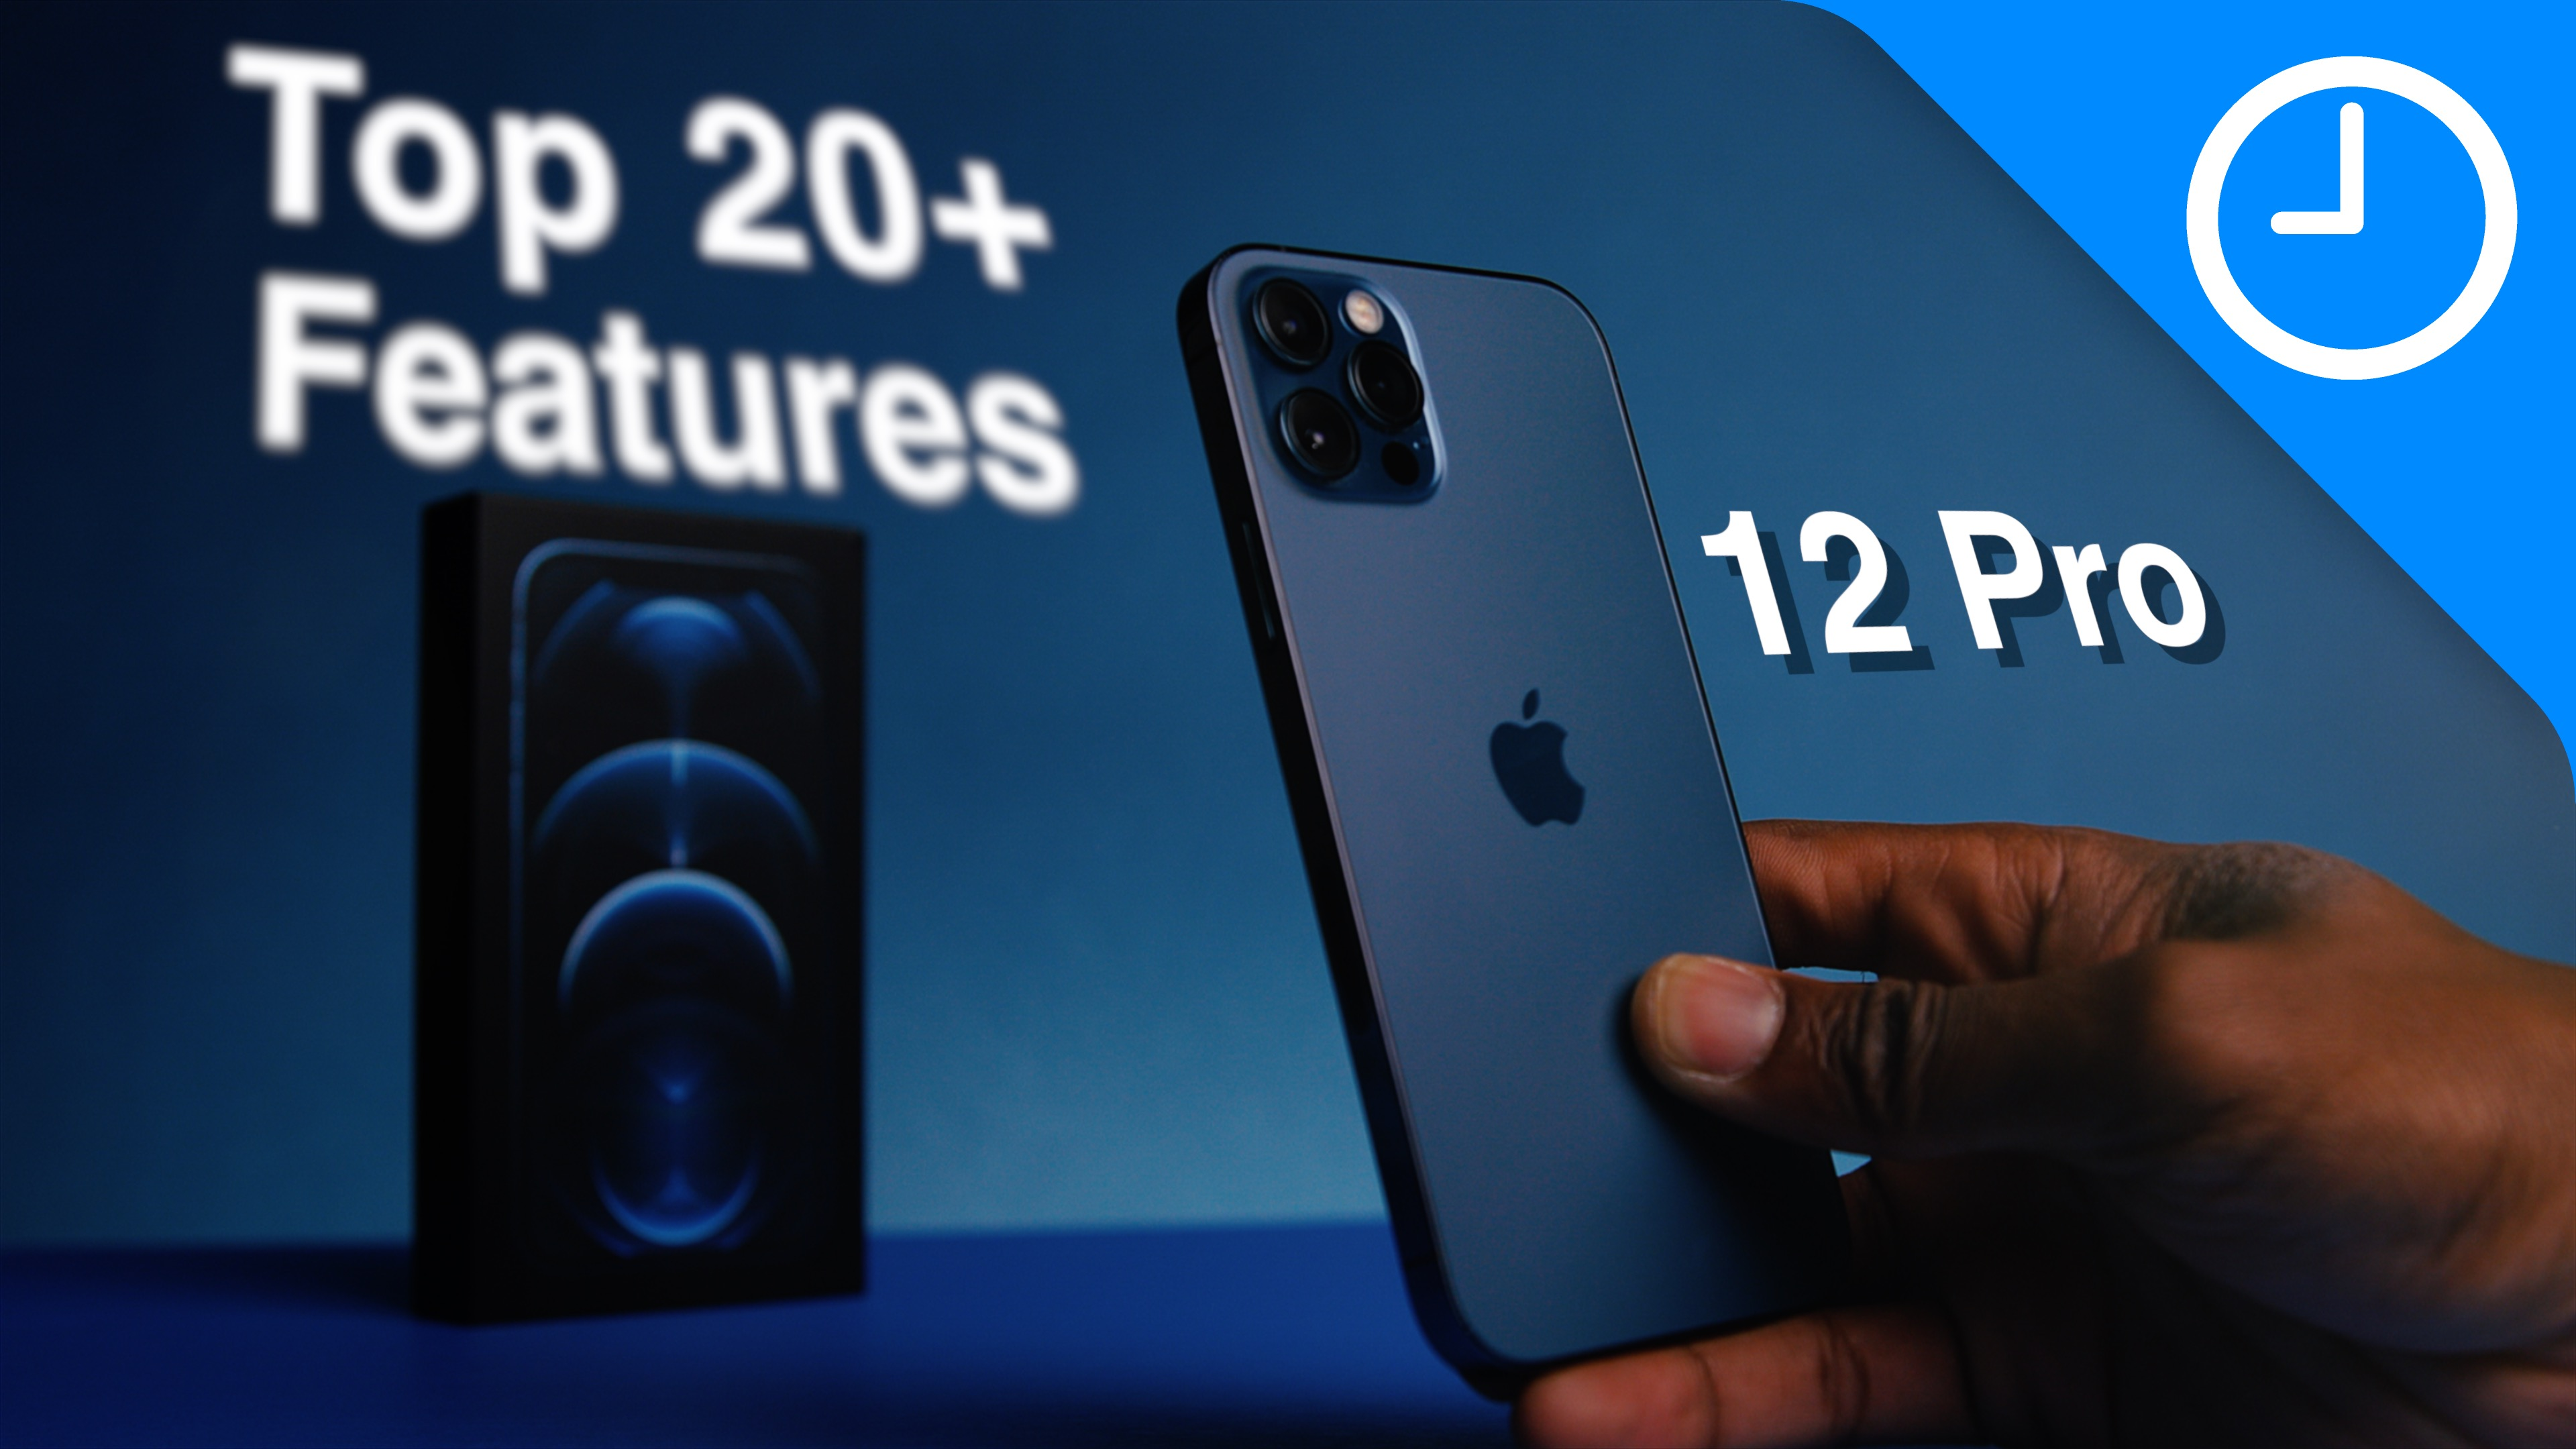 Iphone 12 Pro Top Features Video 9to5mac